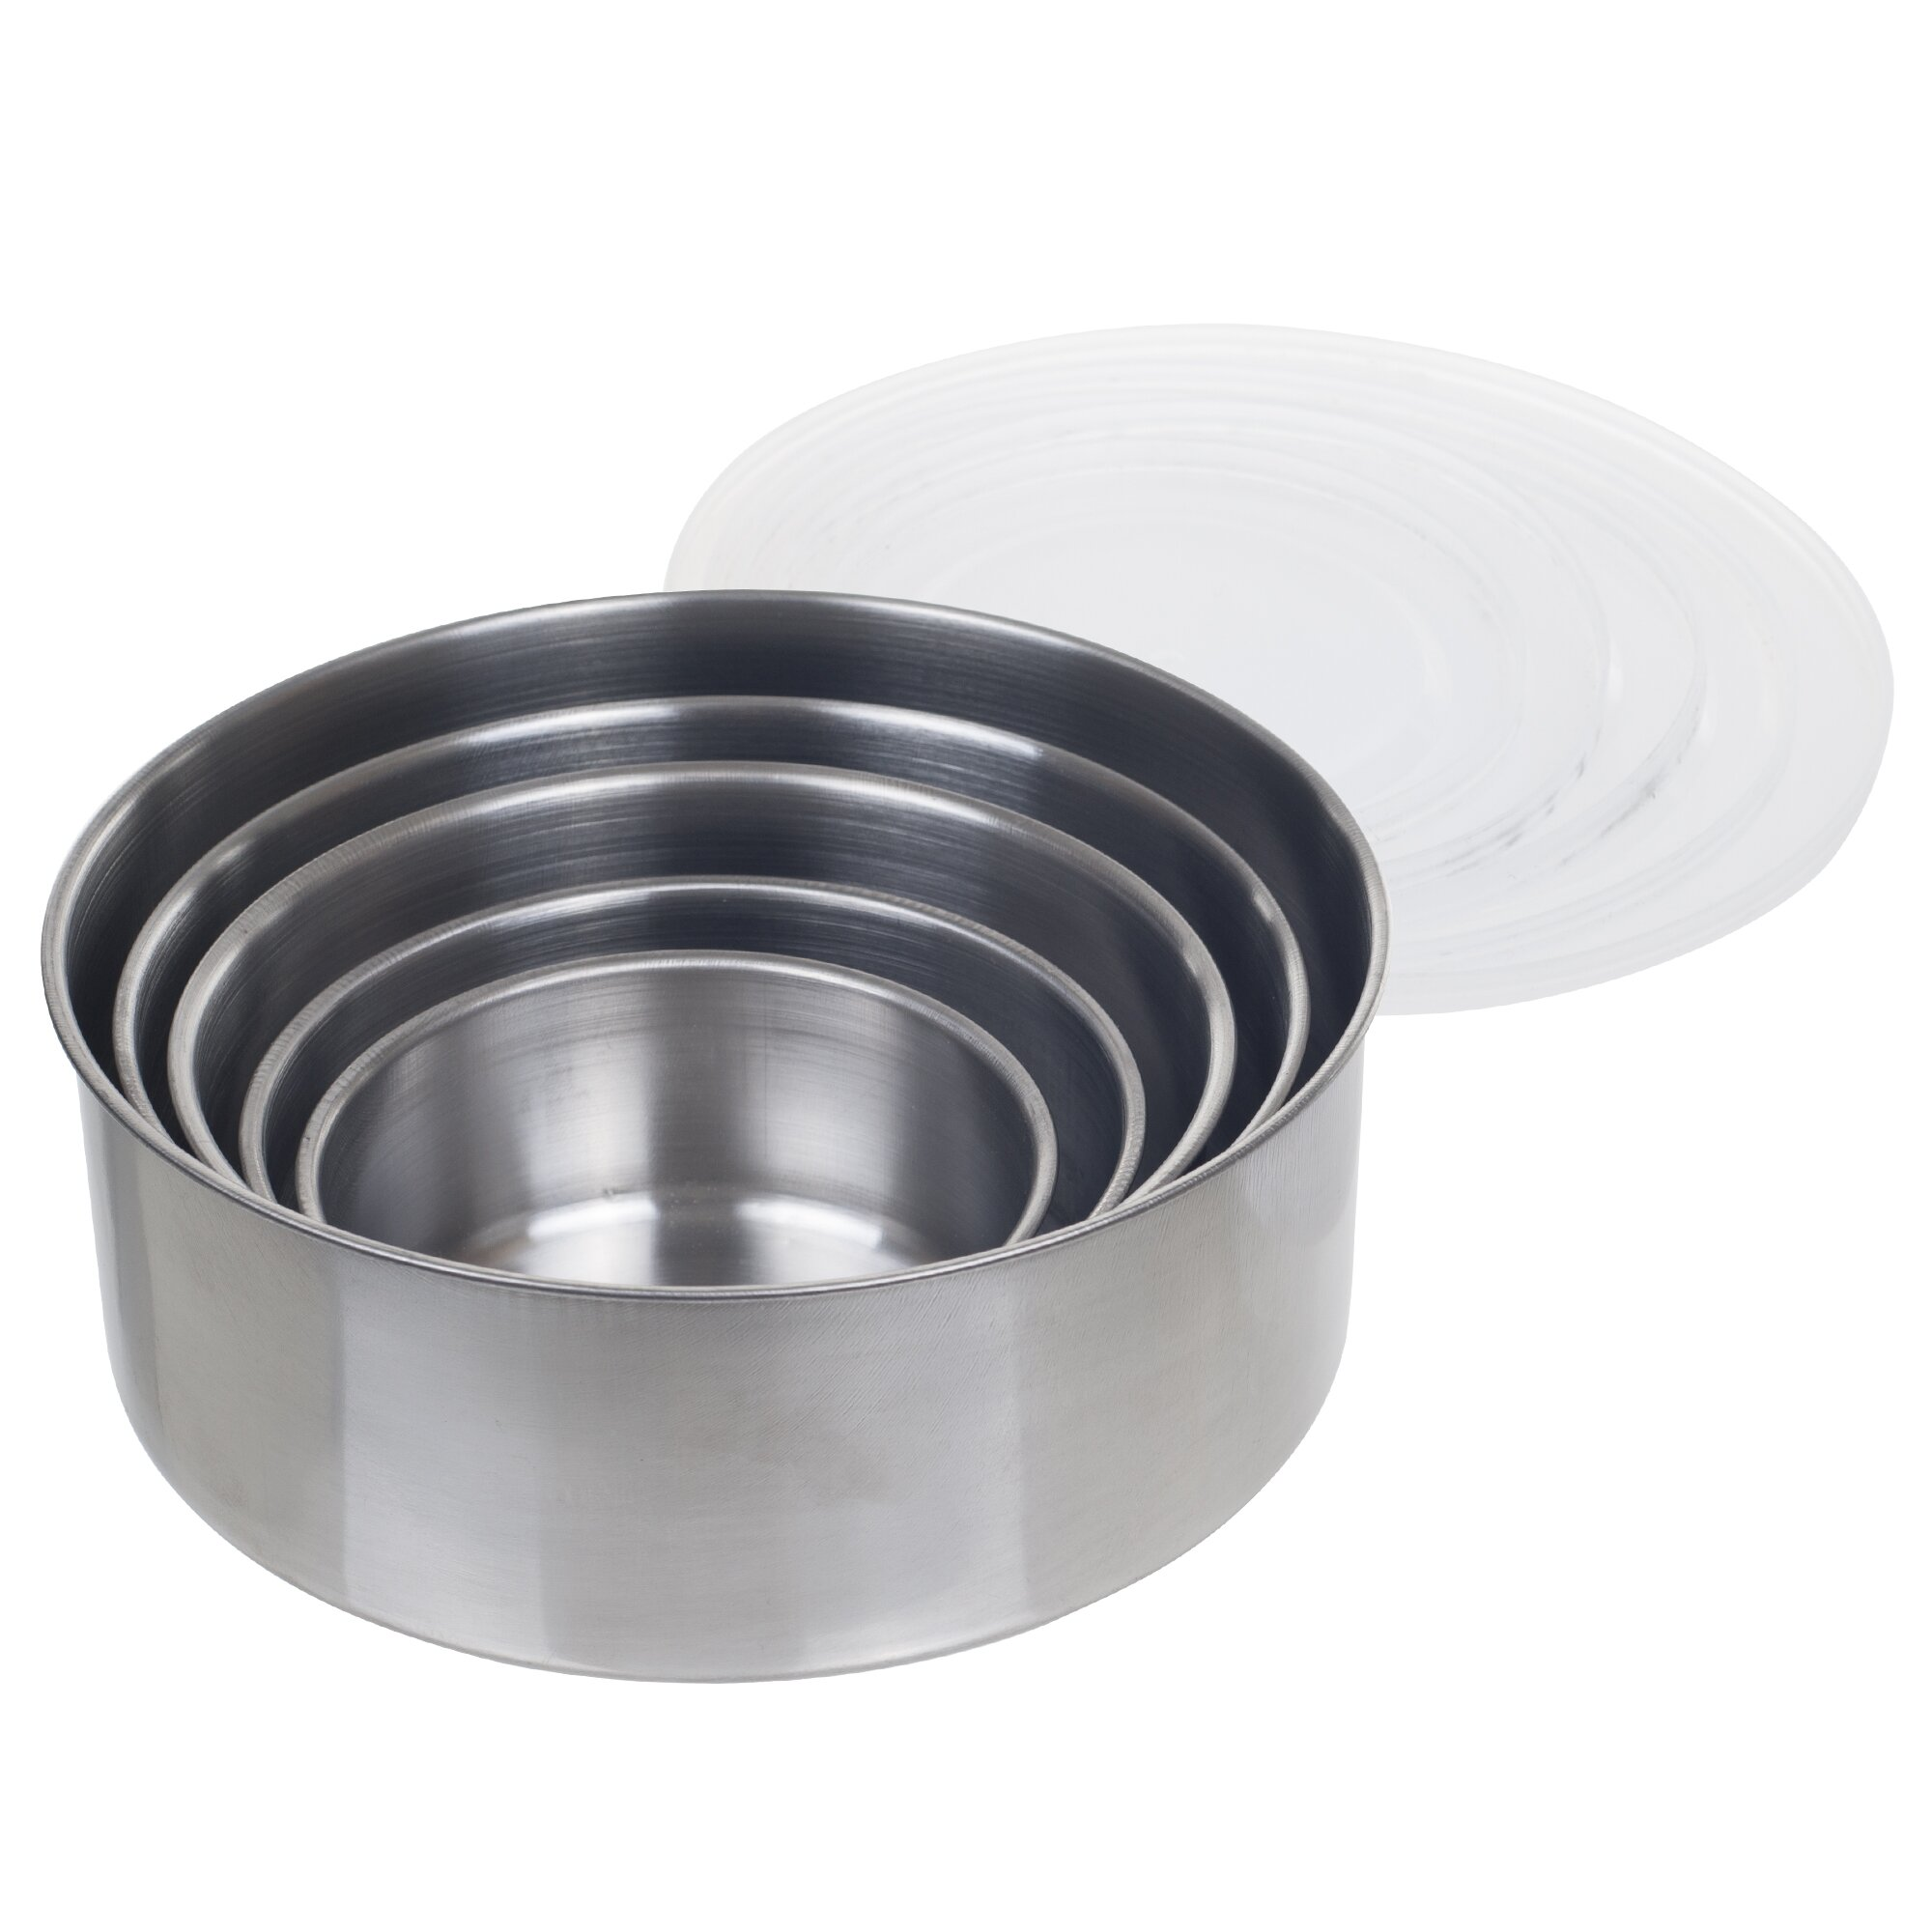 Gadgets stainless steel mixing bowls chef buddy sku cfb1206